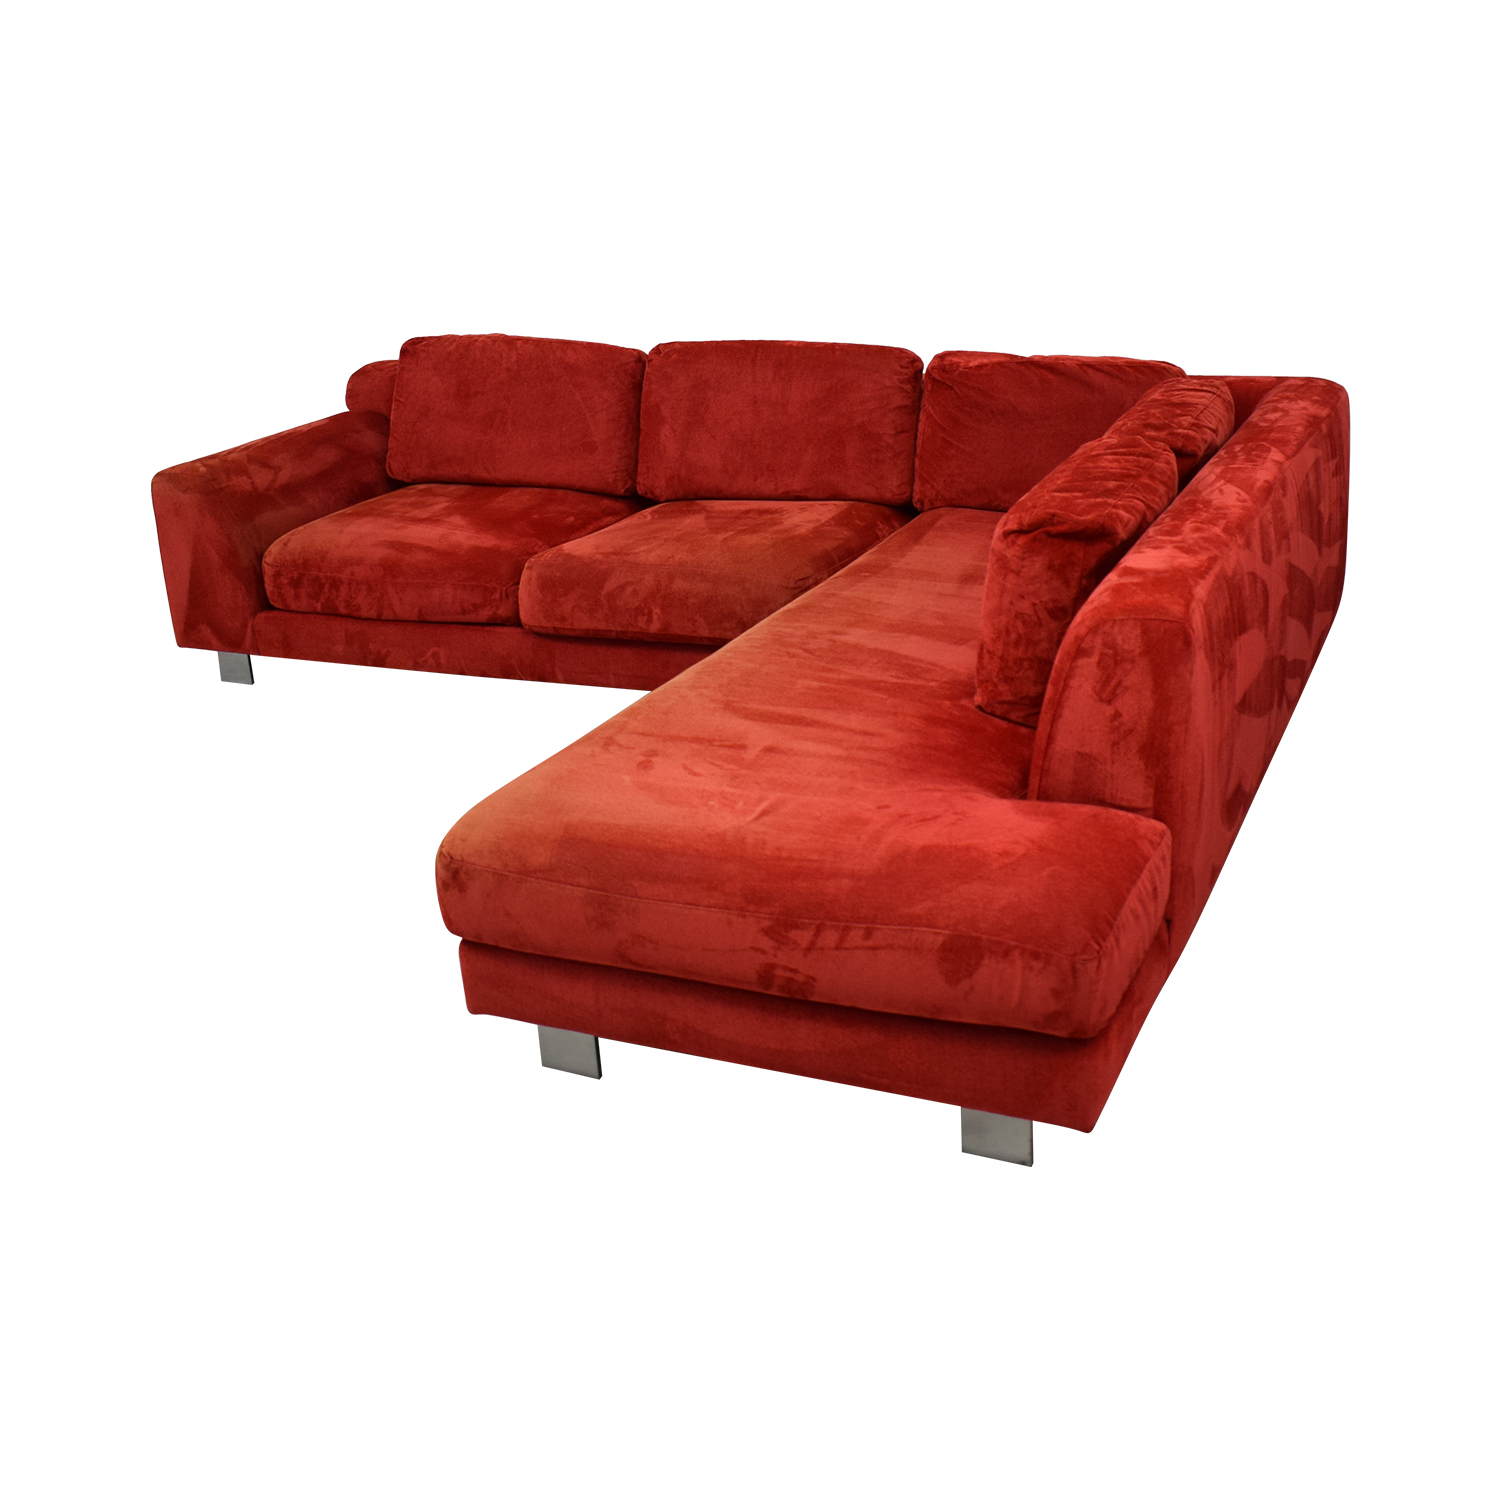 Calligaris Calligaris Sectional Sofa dimensions